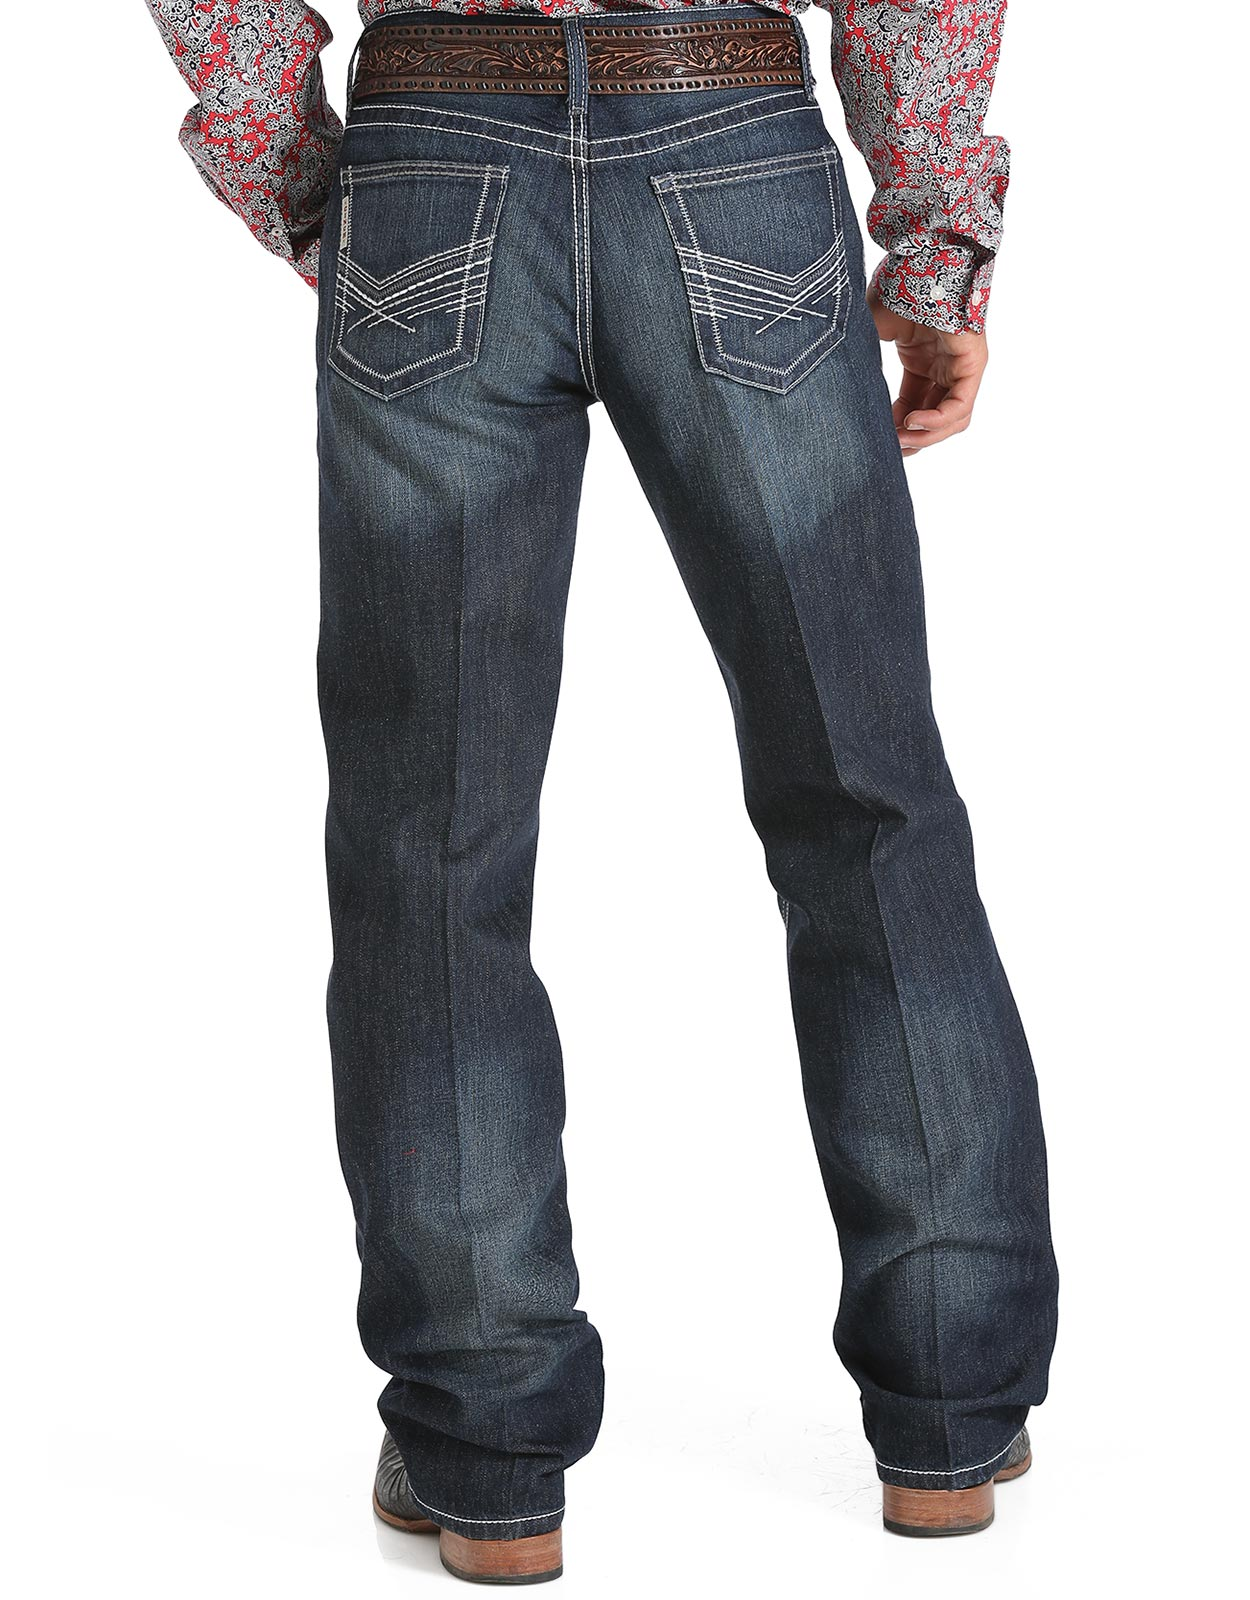 Cinch Men's Grant Mid Rise Relaxed Fit Boot Cut Jeans - Rinse